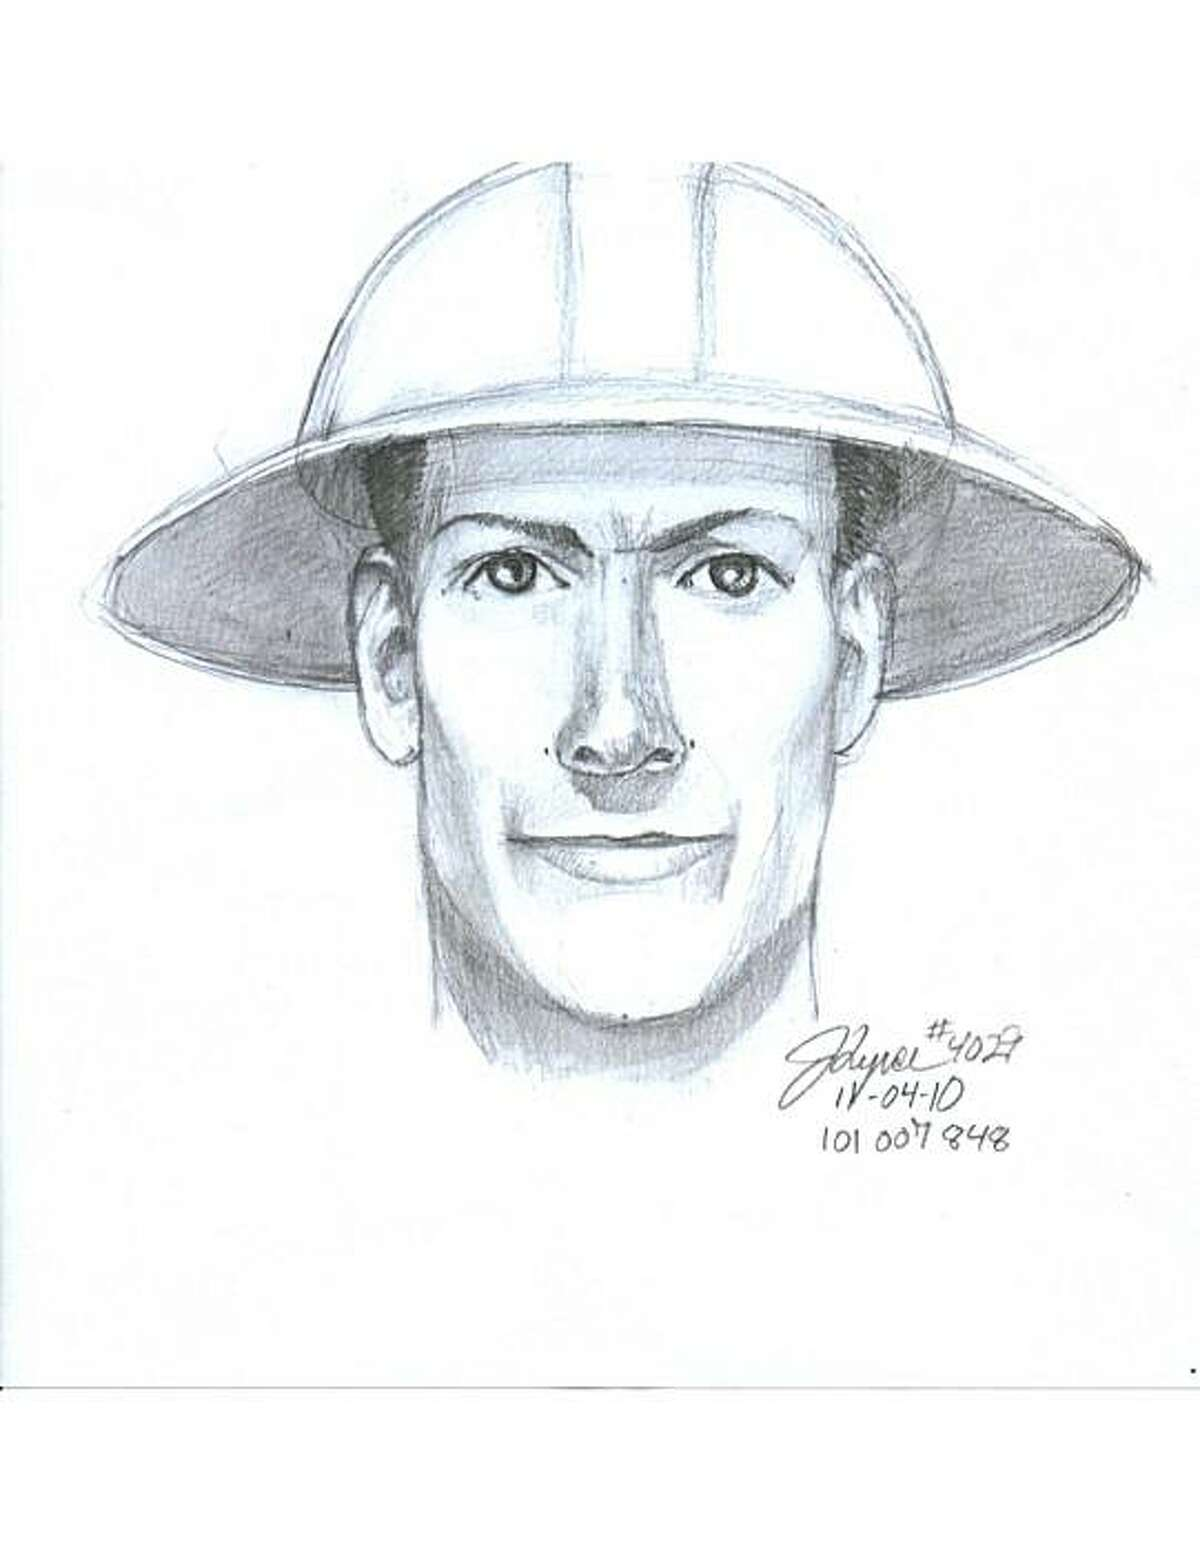 Kate Horan was slain in her S.F. apartment. San Francisco police have released a composite sketch of the suspect and photos of clothing he was wearing and items he was carrying. Police say the killer posed as a utility worker to gain entrance into the victim's apartment building.